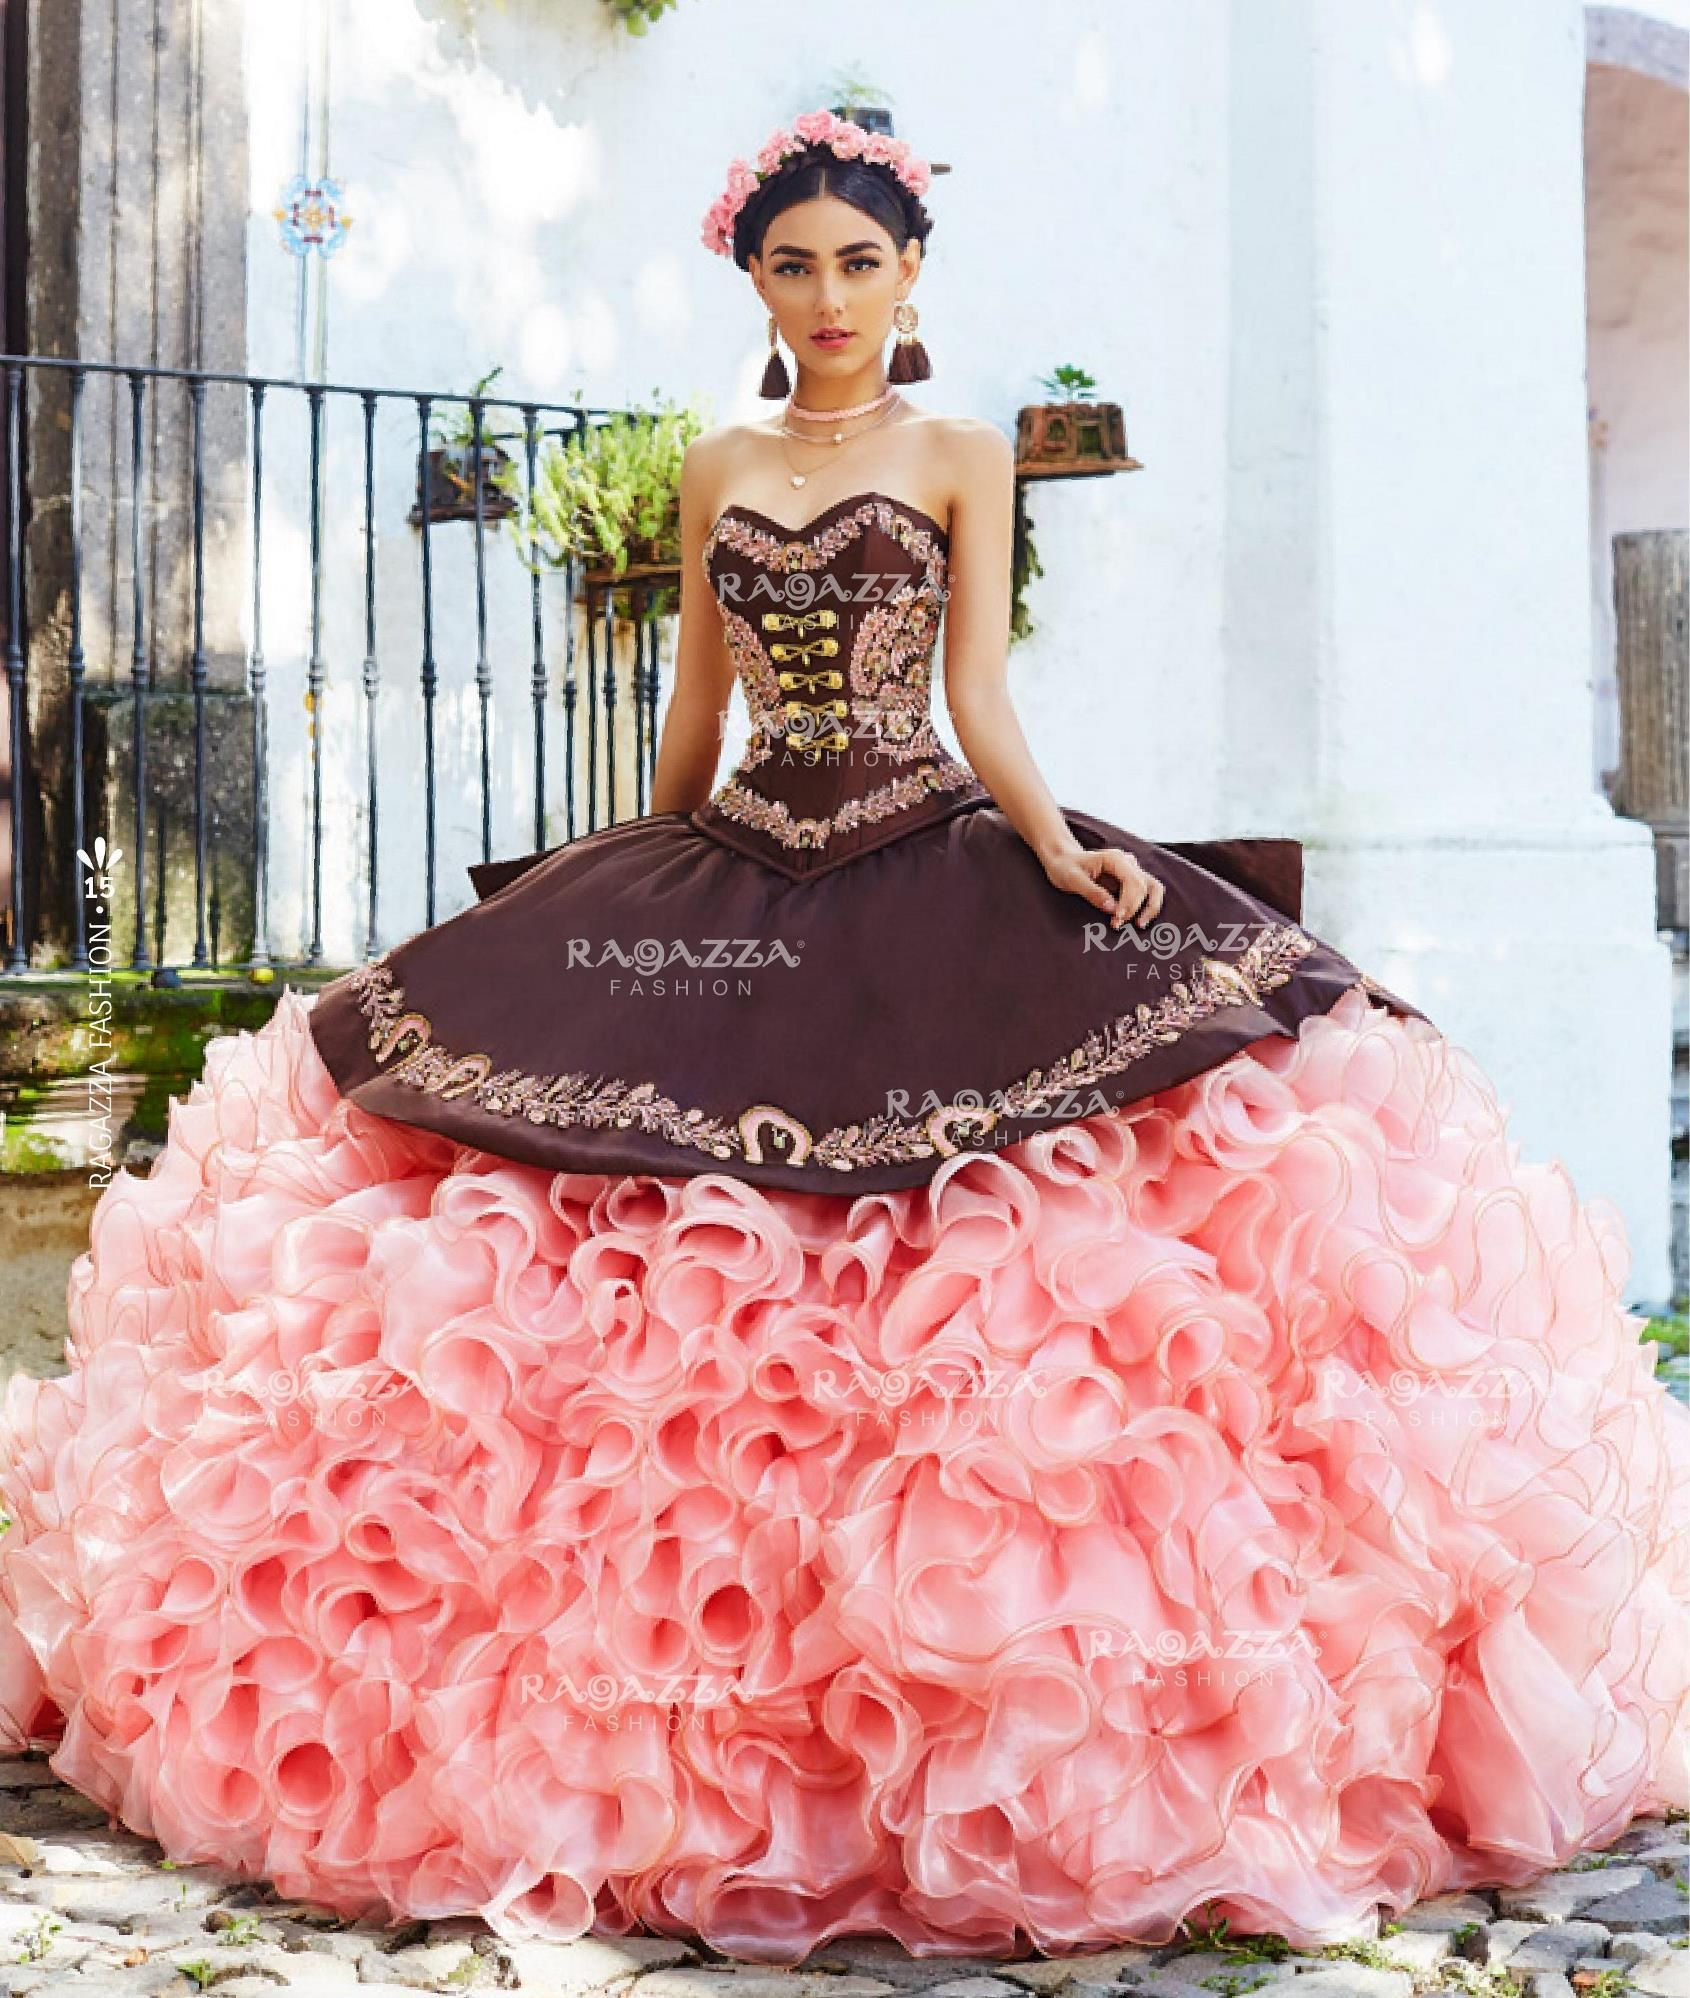 932bb0b354 Ruffled Charro Quinceanera Dress by Ragazza Fashion Style M14-114 ...